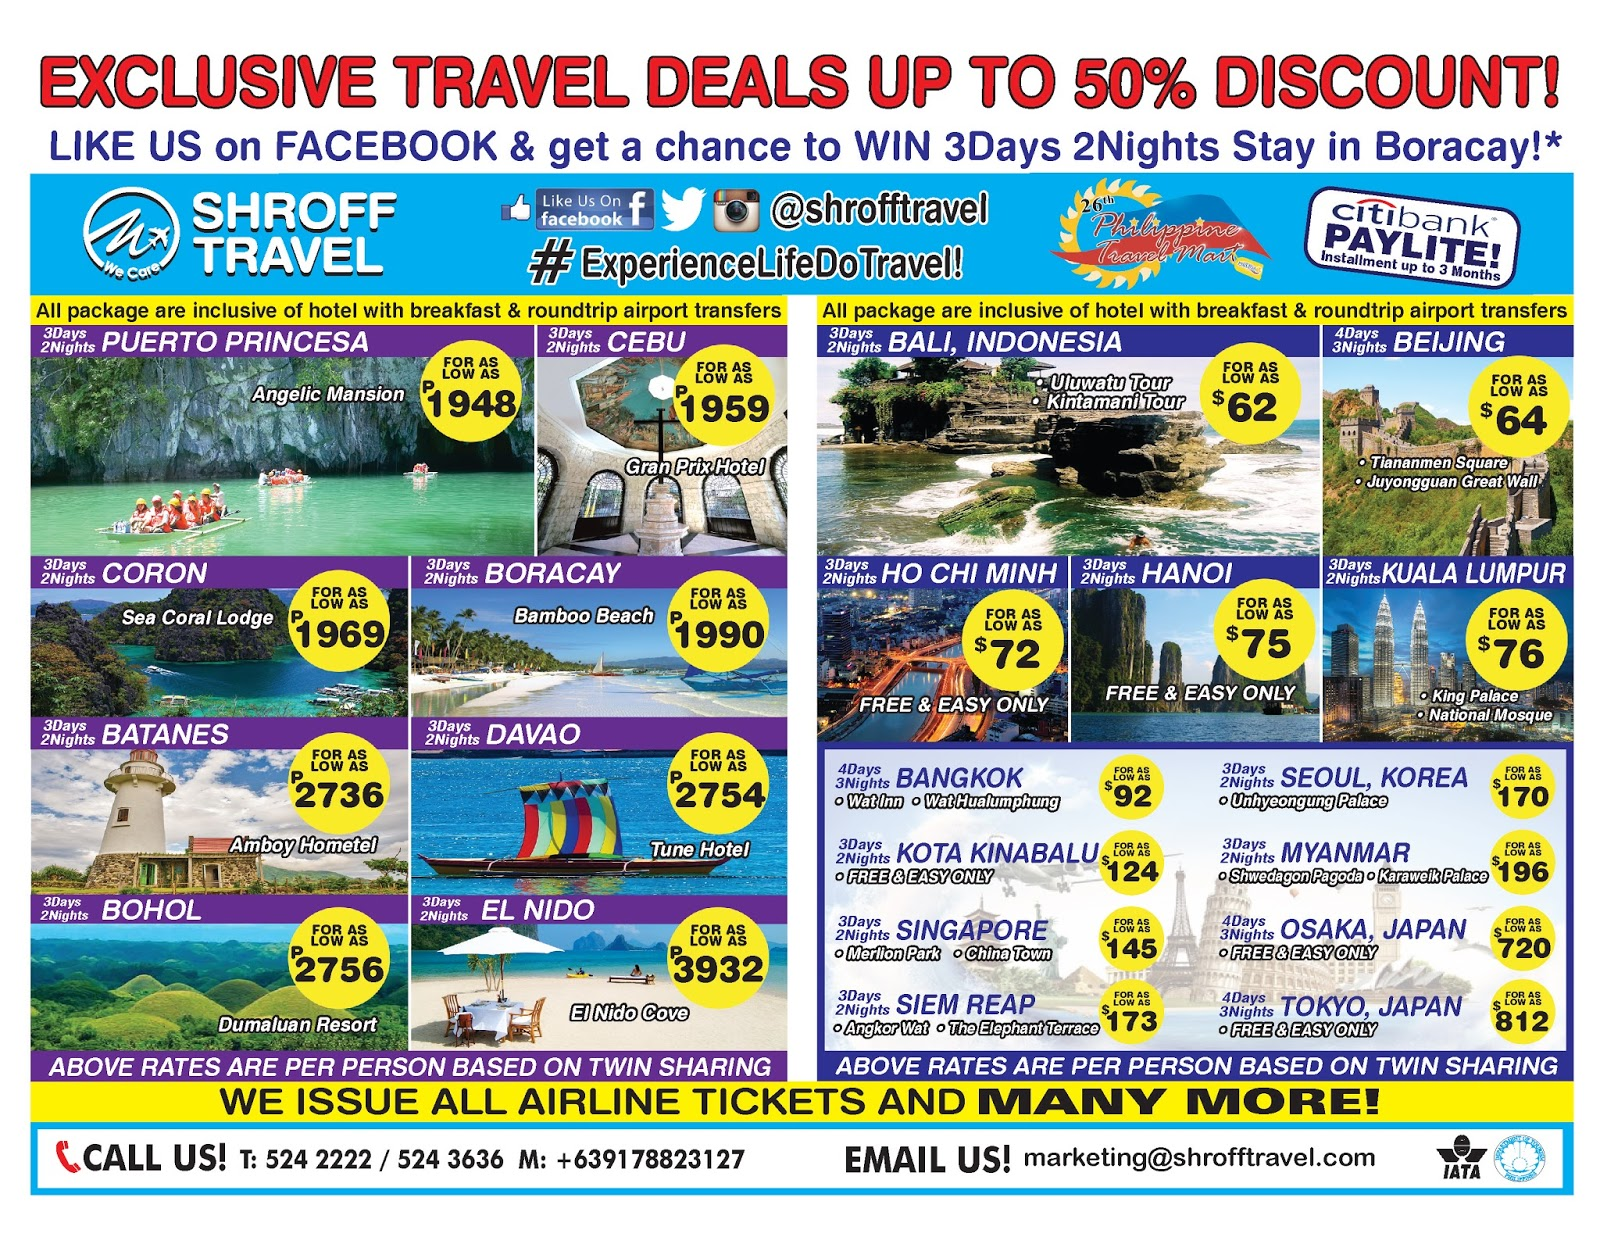 Shroff Travel Offers Exclusive Travel Deals Up to 50% ...